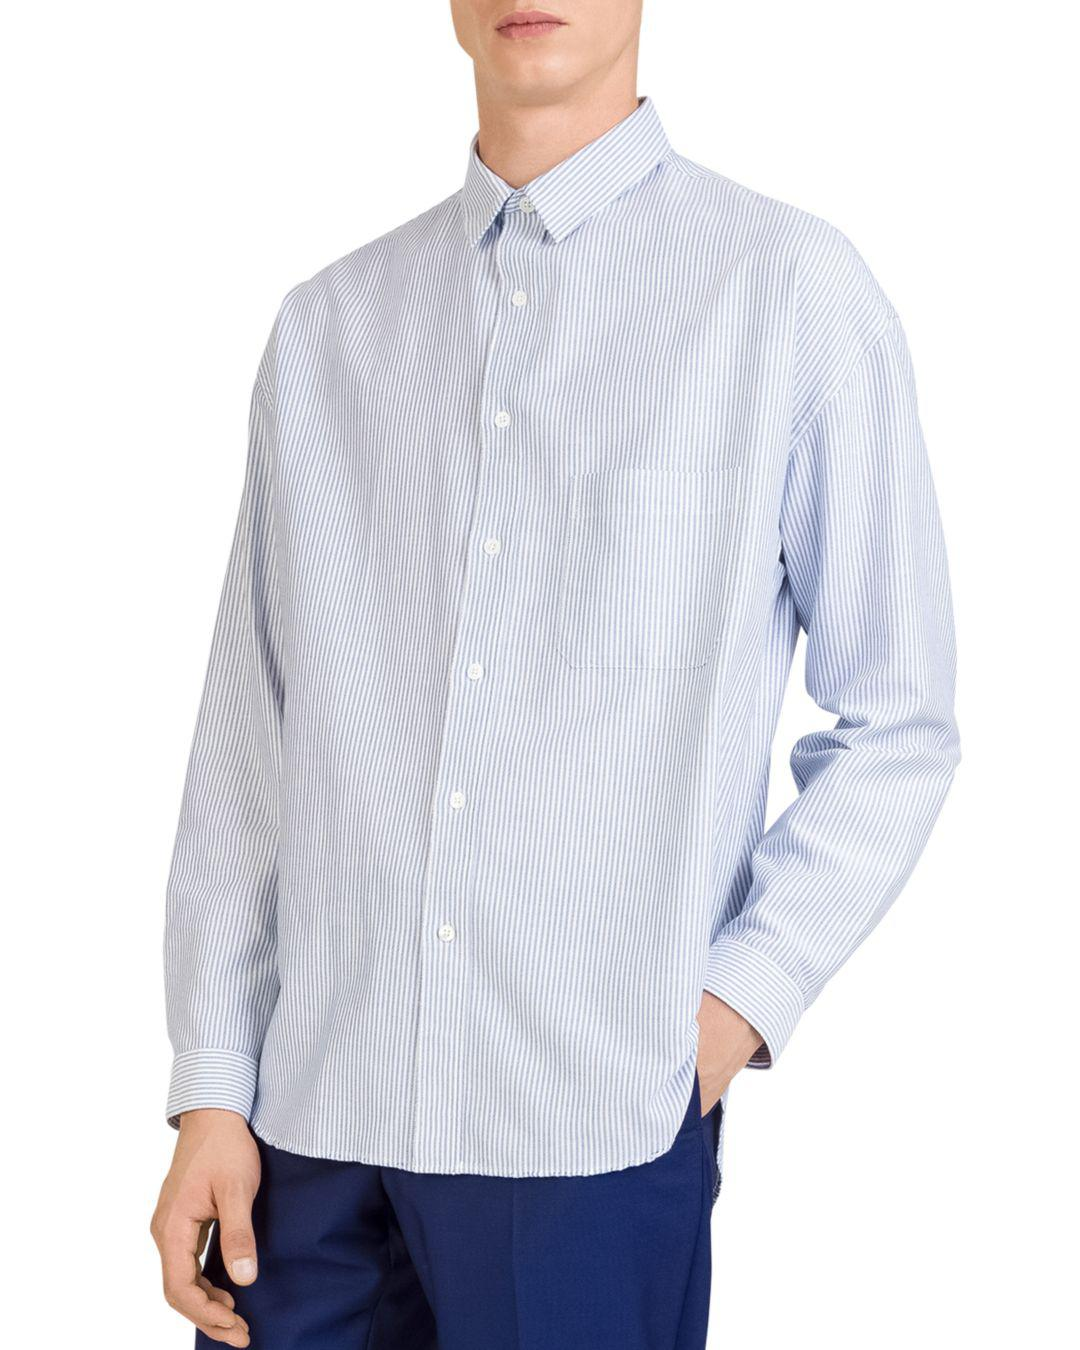 133ead30715 Lyst - The Kooples Striped Regular Fit Oxford Button-down Shirt in ...